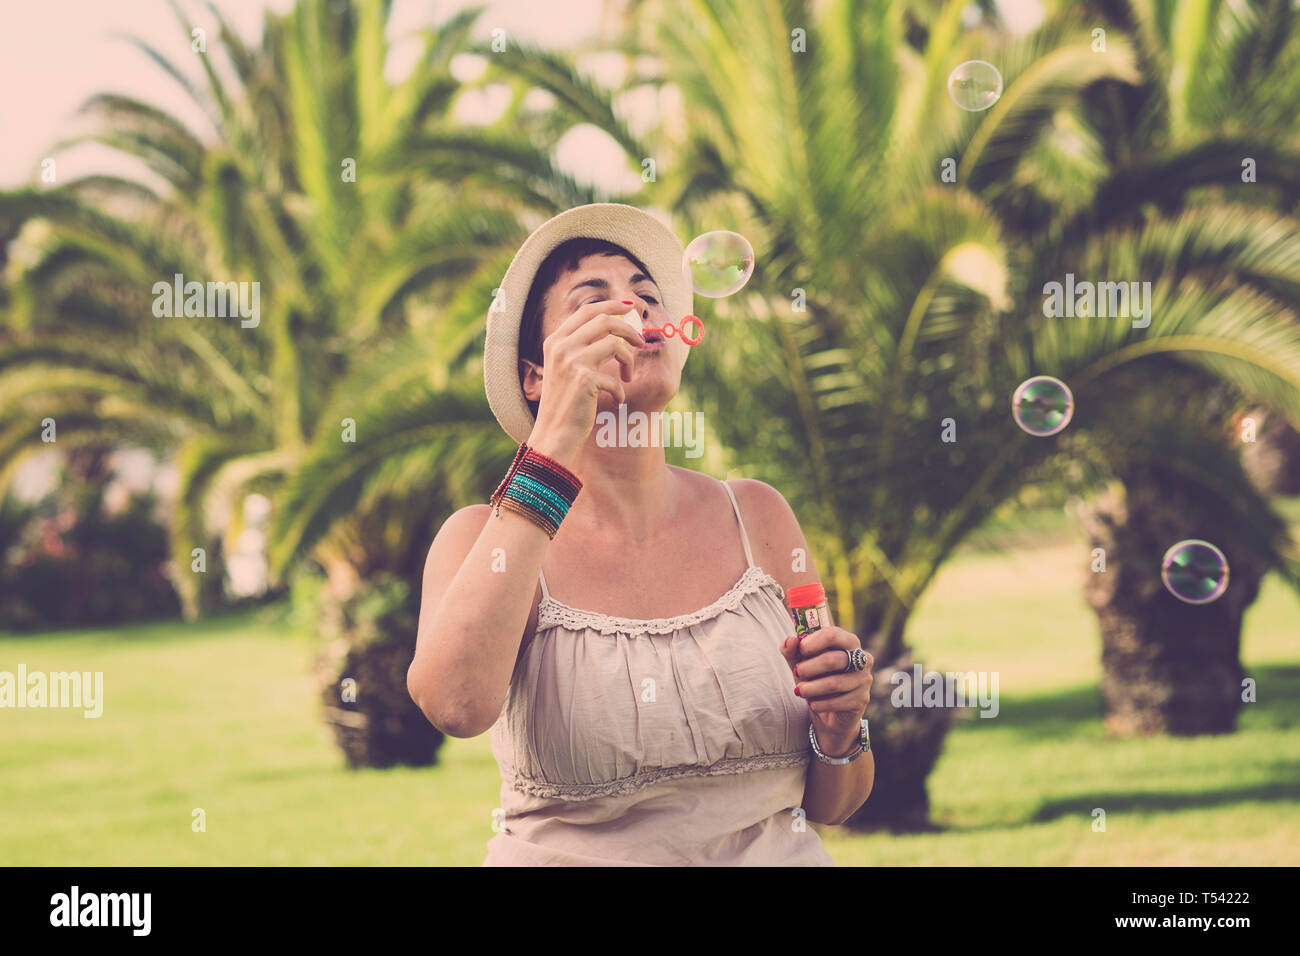 Young cute caucasian female play and have fun doing soap bubbles outdoor at the tropical park - enjoying leisure activity with kid play - no stress pe Stock Photo